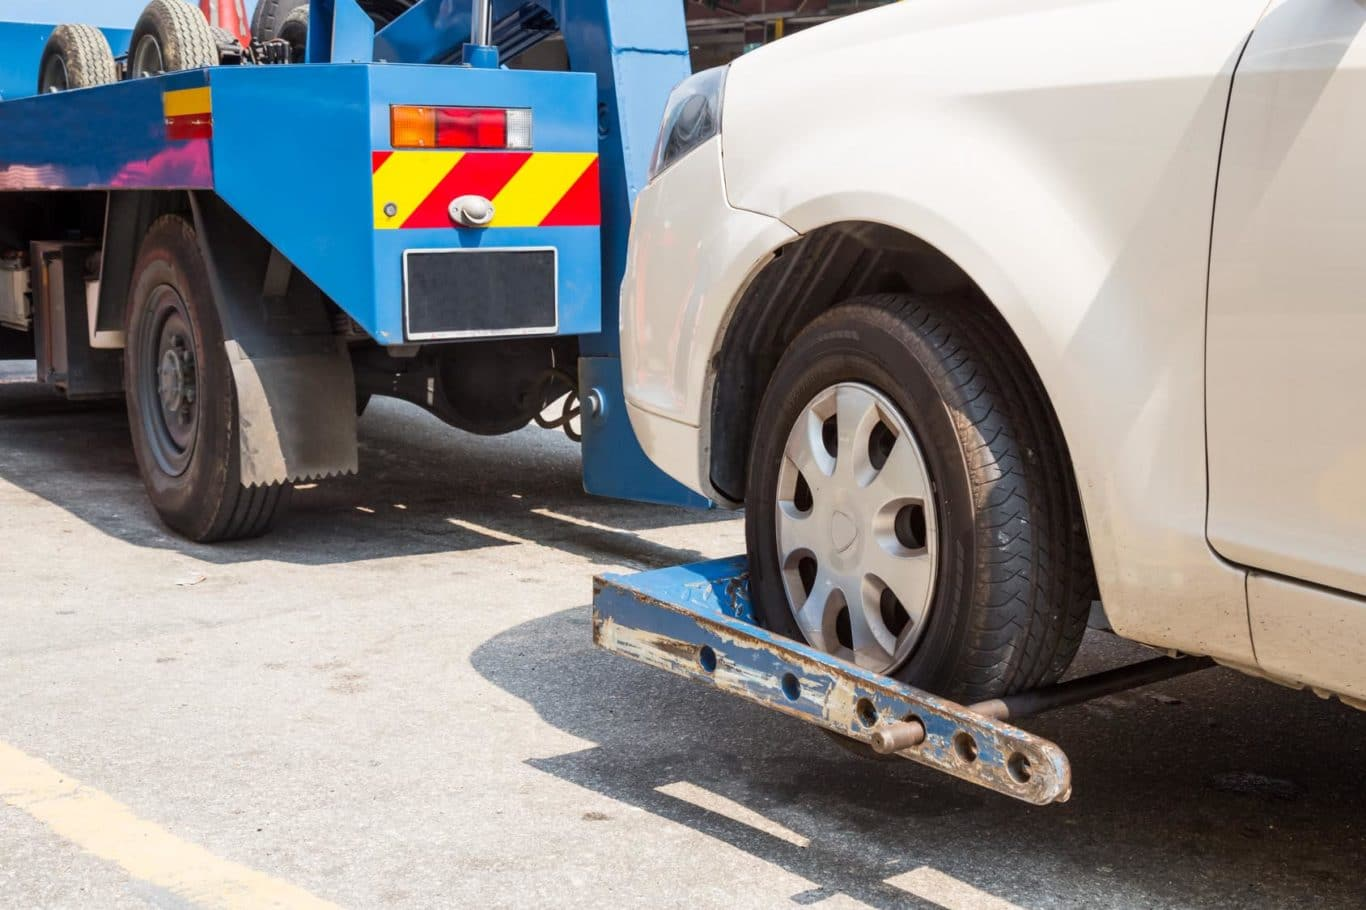 Donabate expert Car Towing services